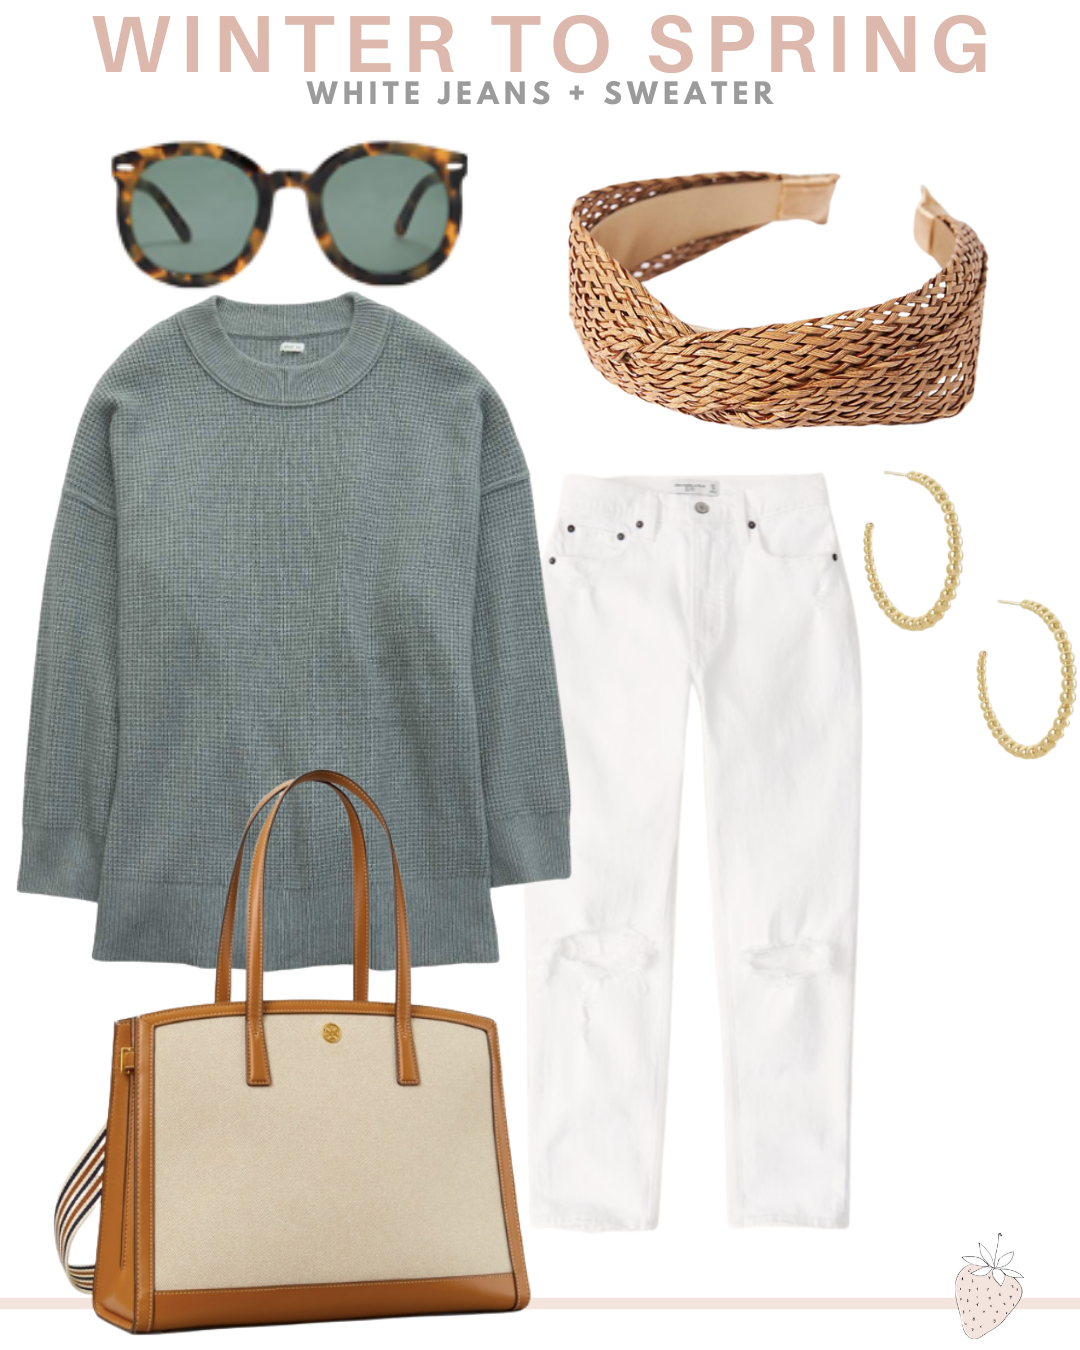 white jeans and sweater spring outfit